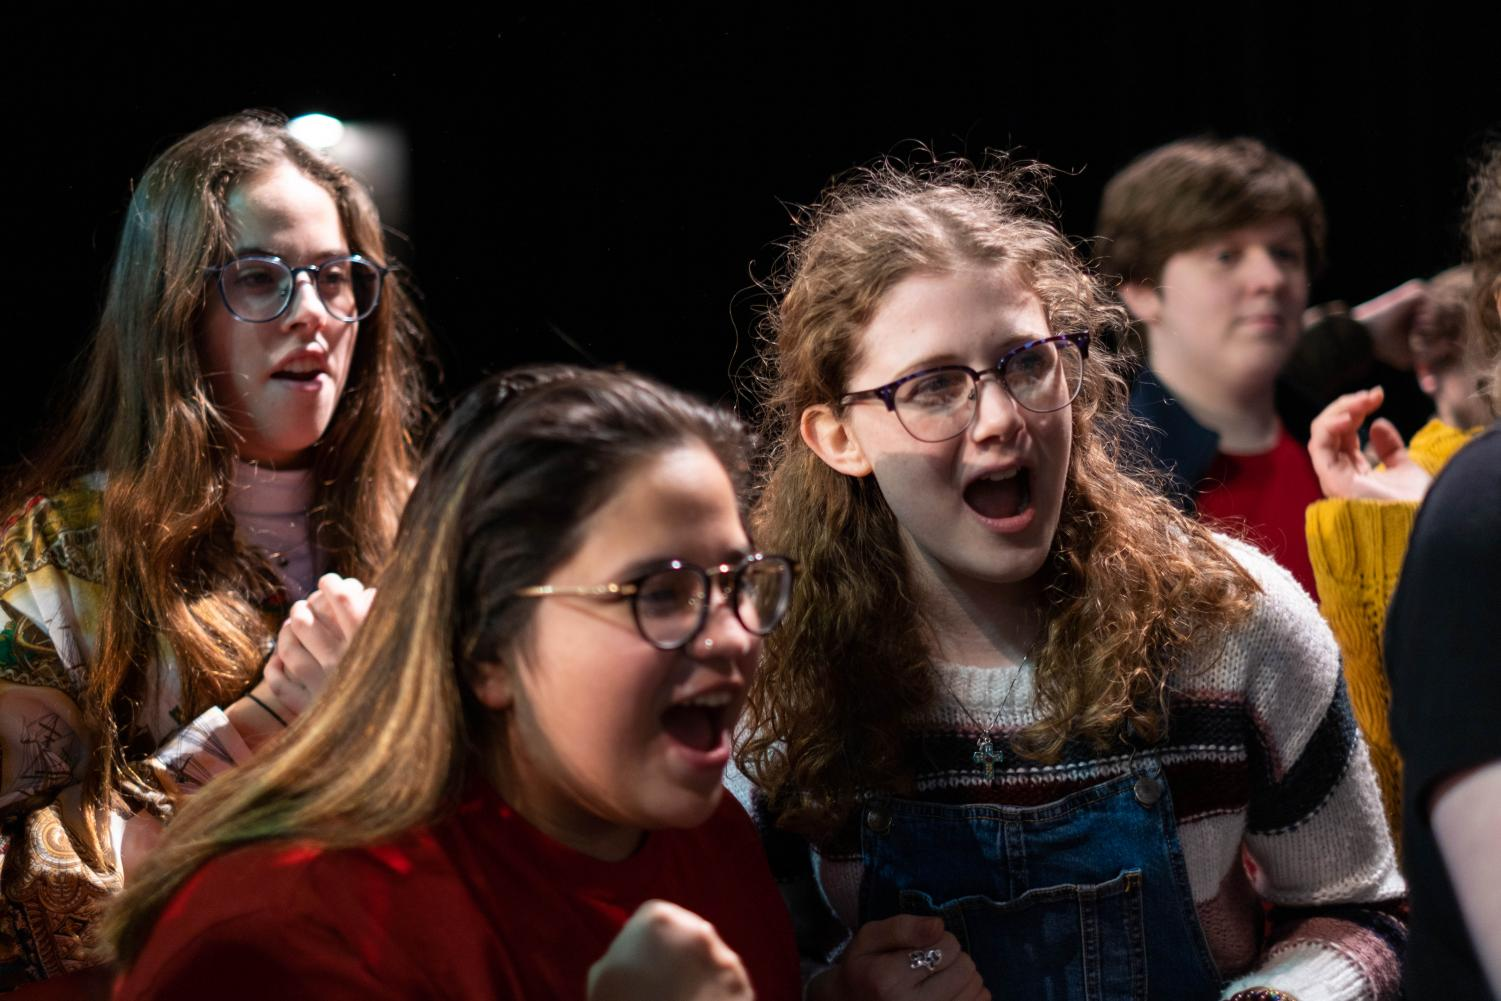 Zoe Michals, Krystal Arias, and Rachel Vrazel gaze at a distant point in awe. Theatre is the common denominator of each of these bright individuals.